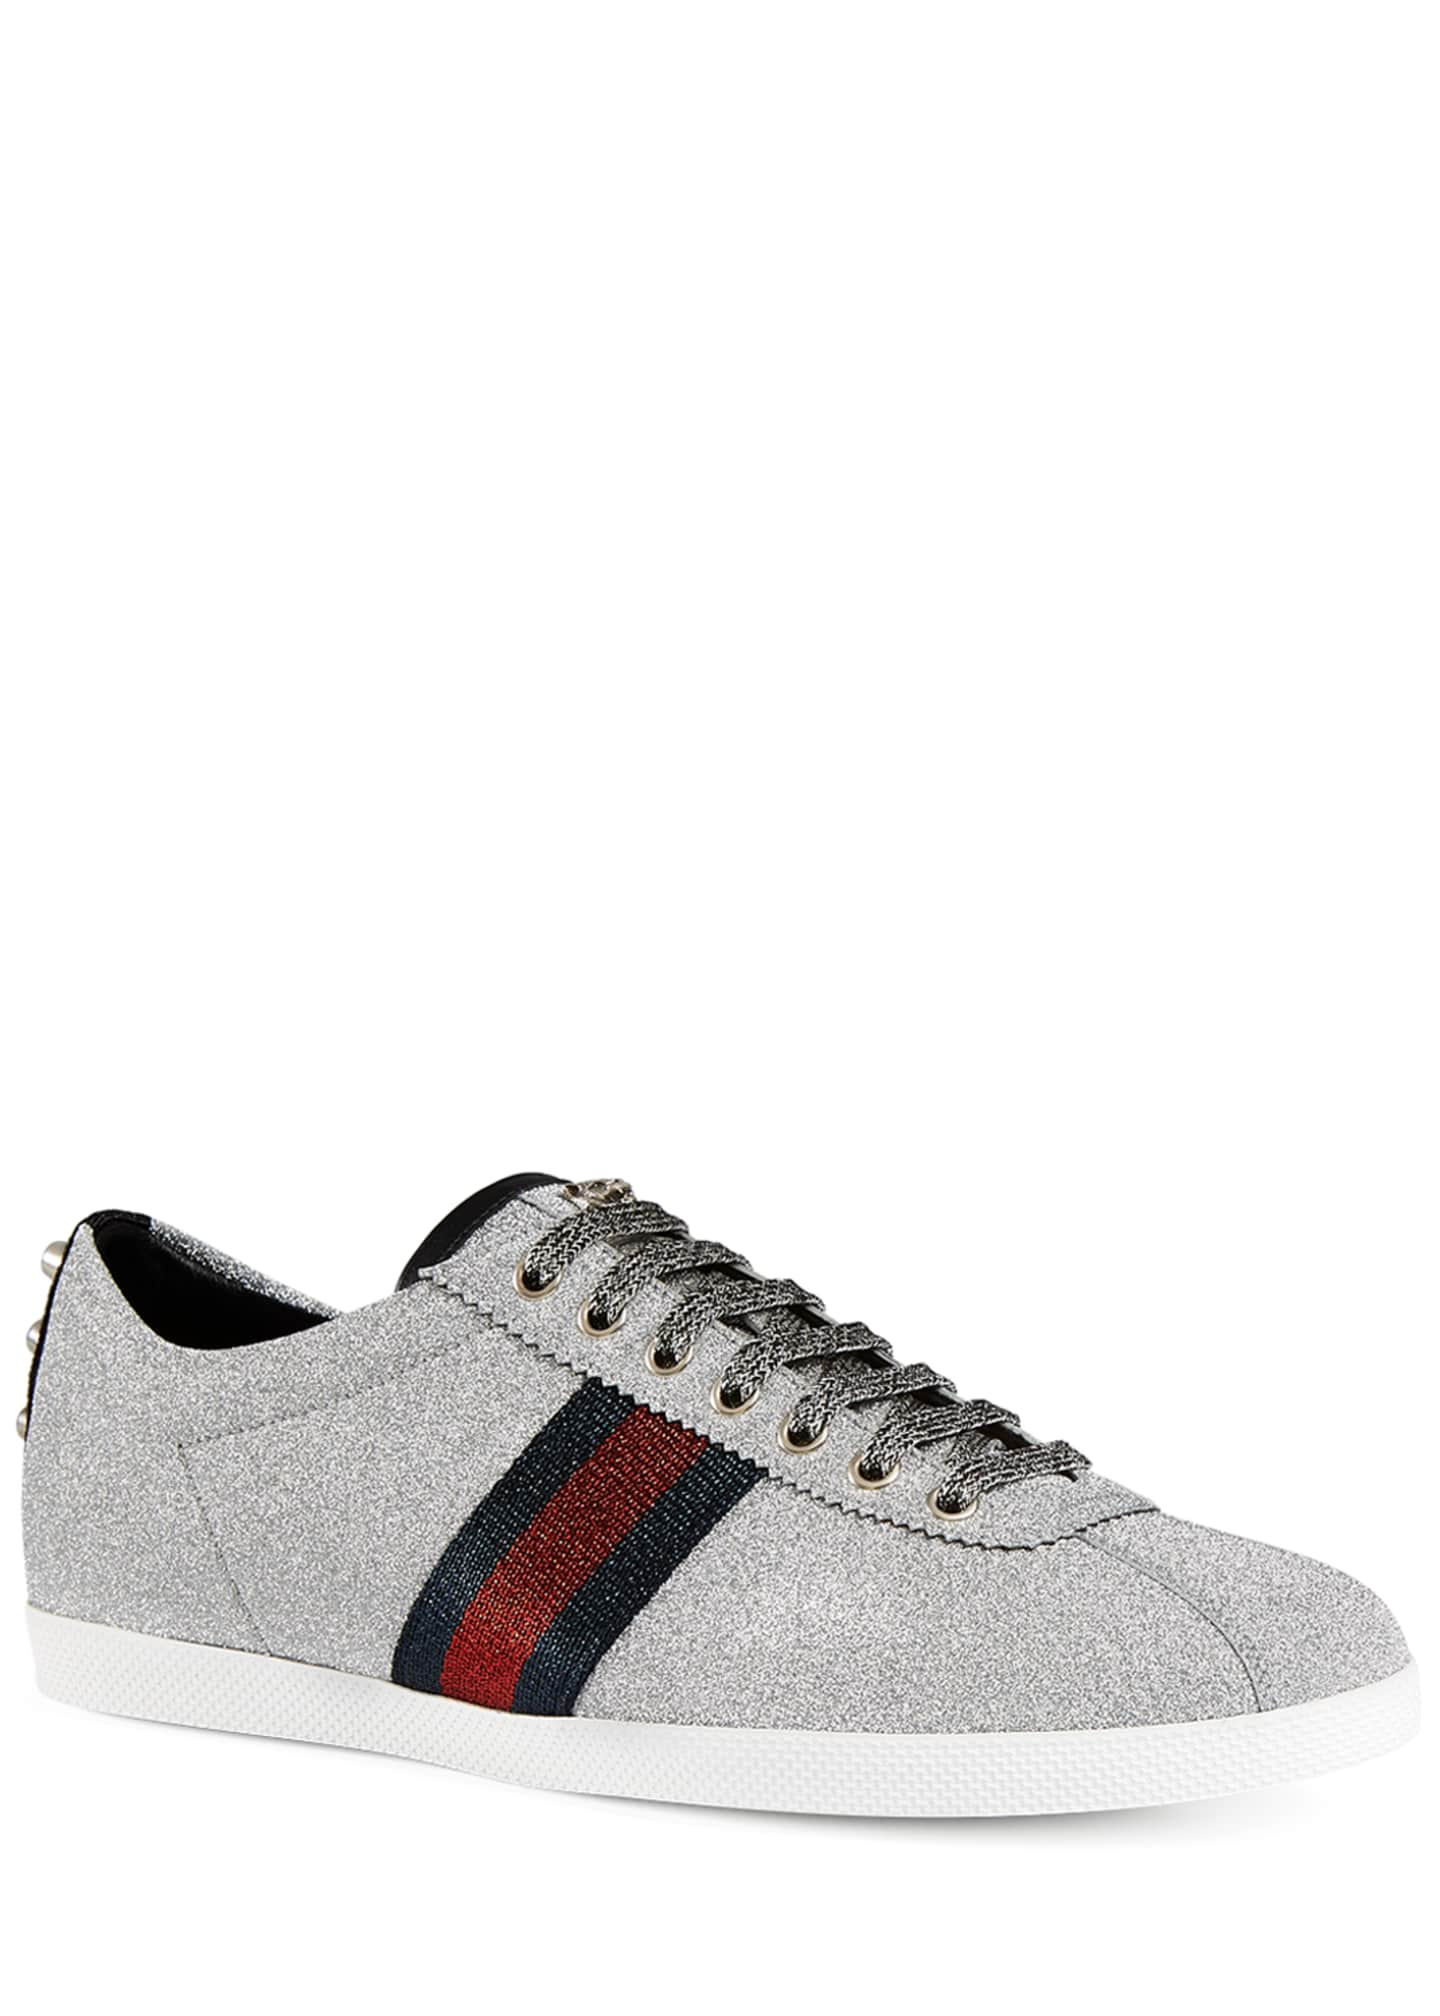 Image 1 of 4: Men's Bambi Web Low-Top Sneakers with Stud Detail, Silver